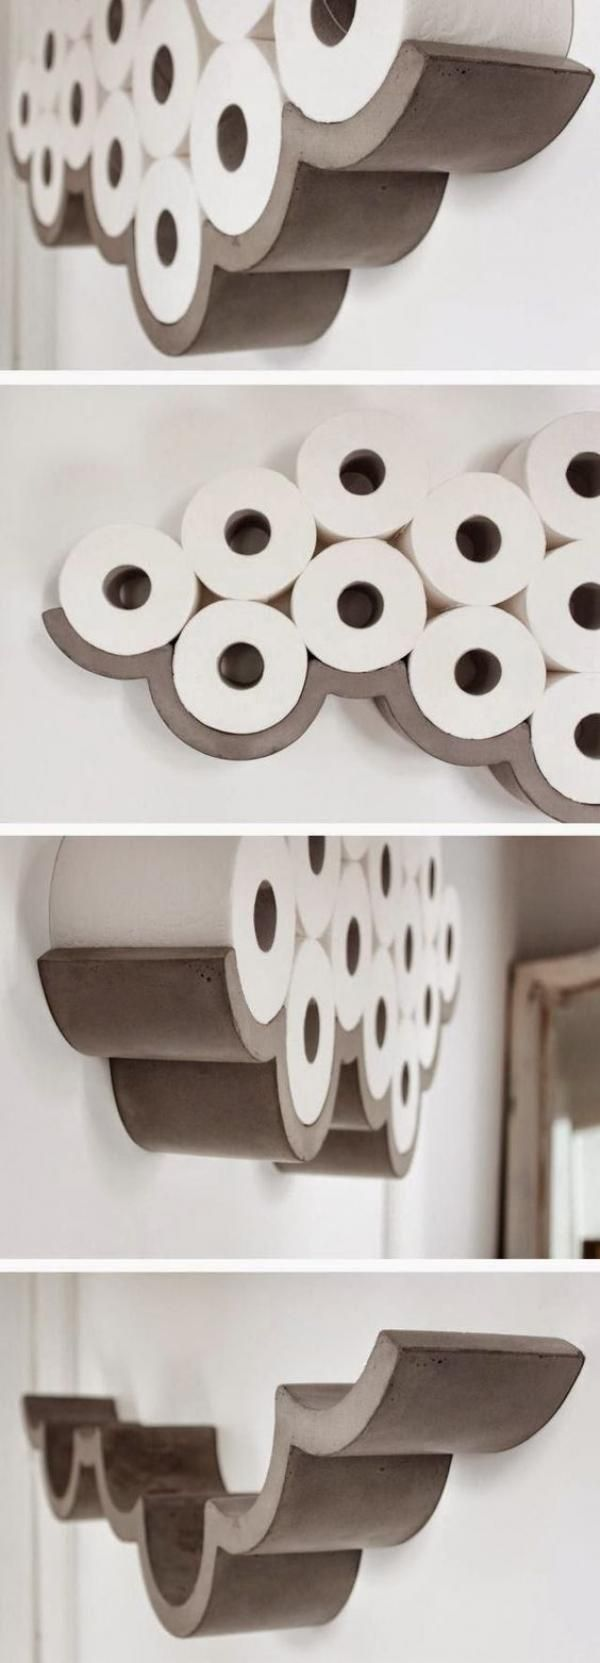 19 Smart Tiny Bathroom Storage that Look Awesome